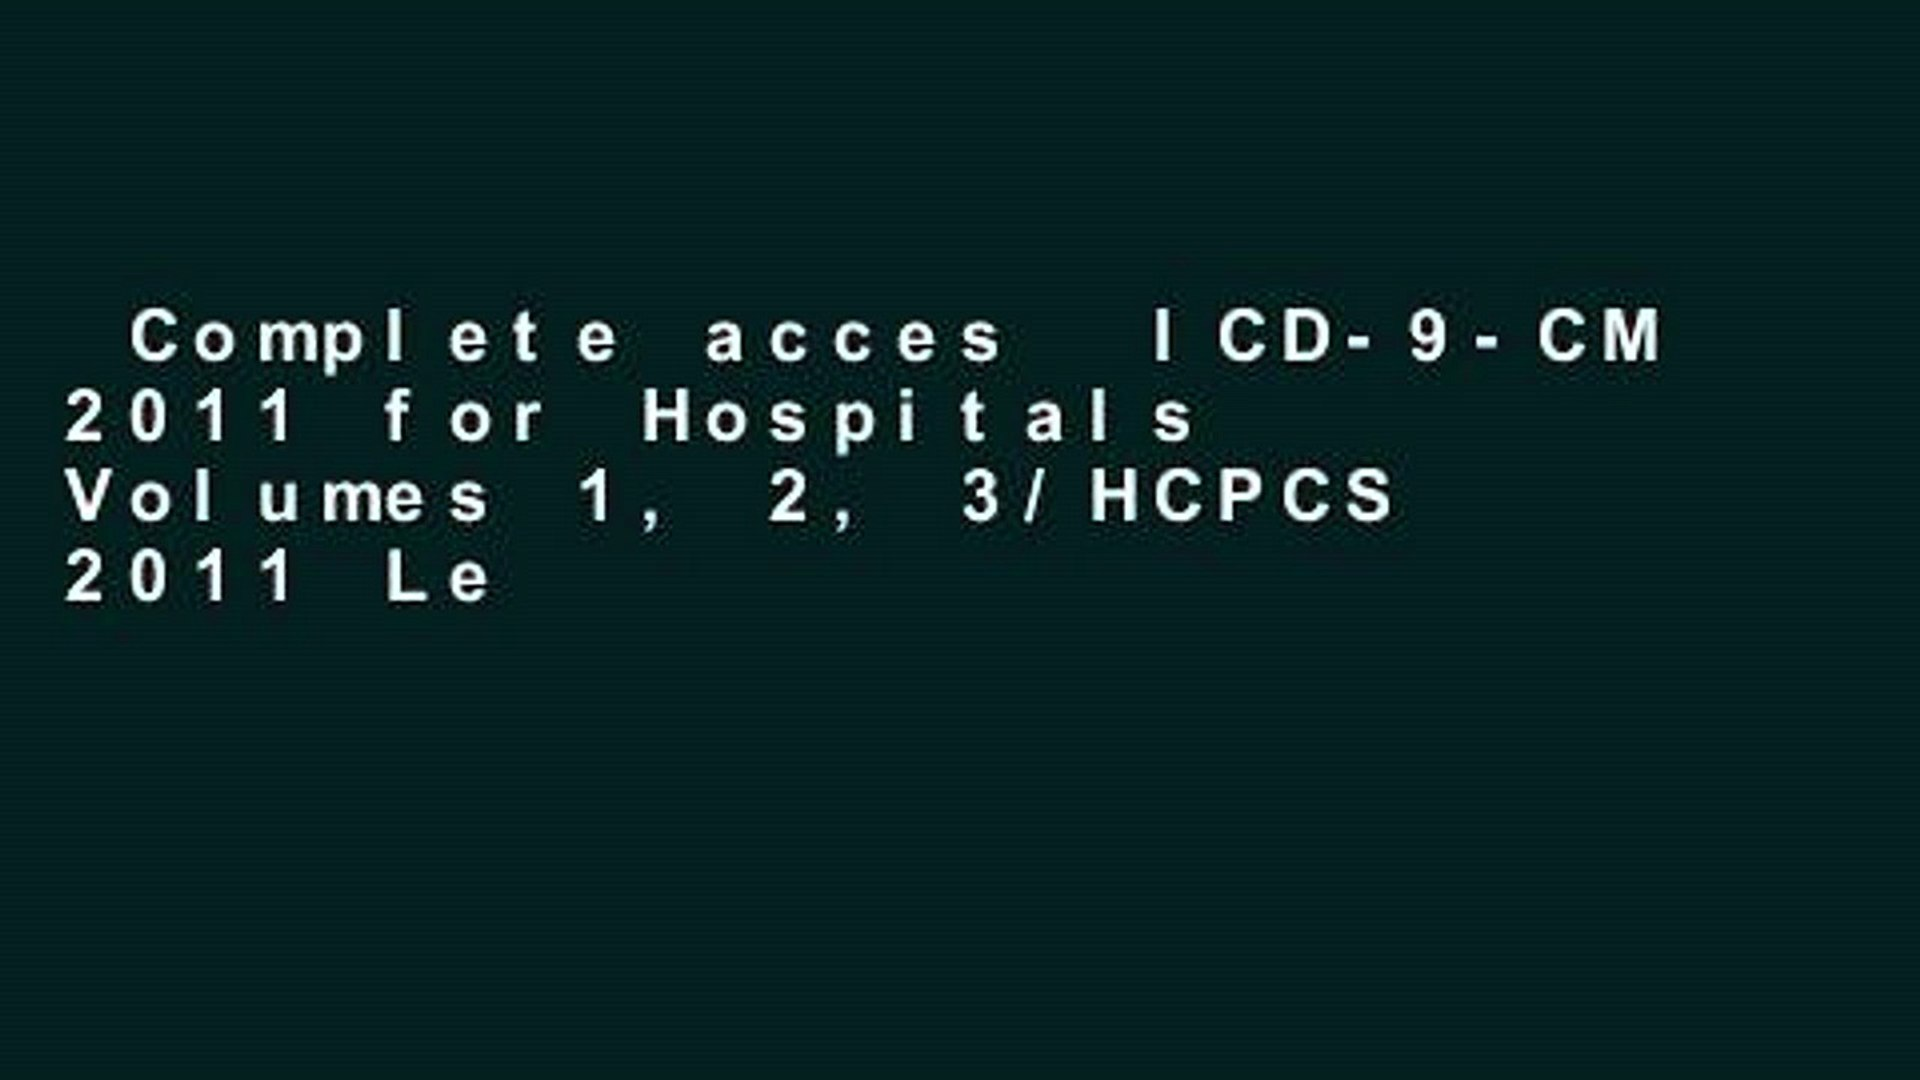 Complete acces  ICD-9-CM 2011 for Hospitals Volumes 1, 2, 3/HCPCS 2011 Level II/CPT 2011  Review